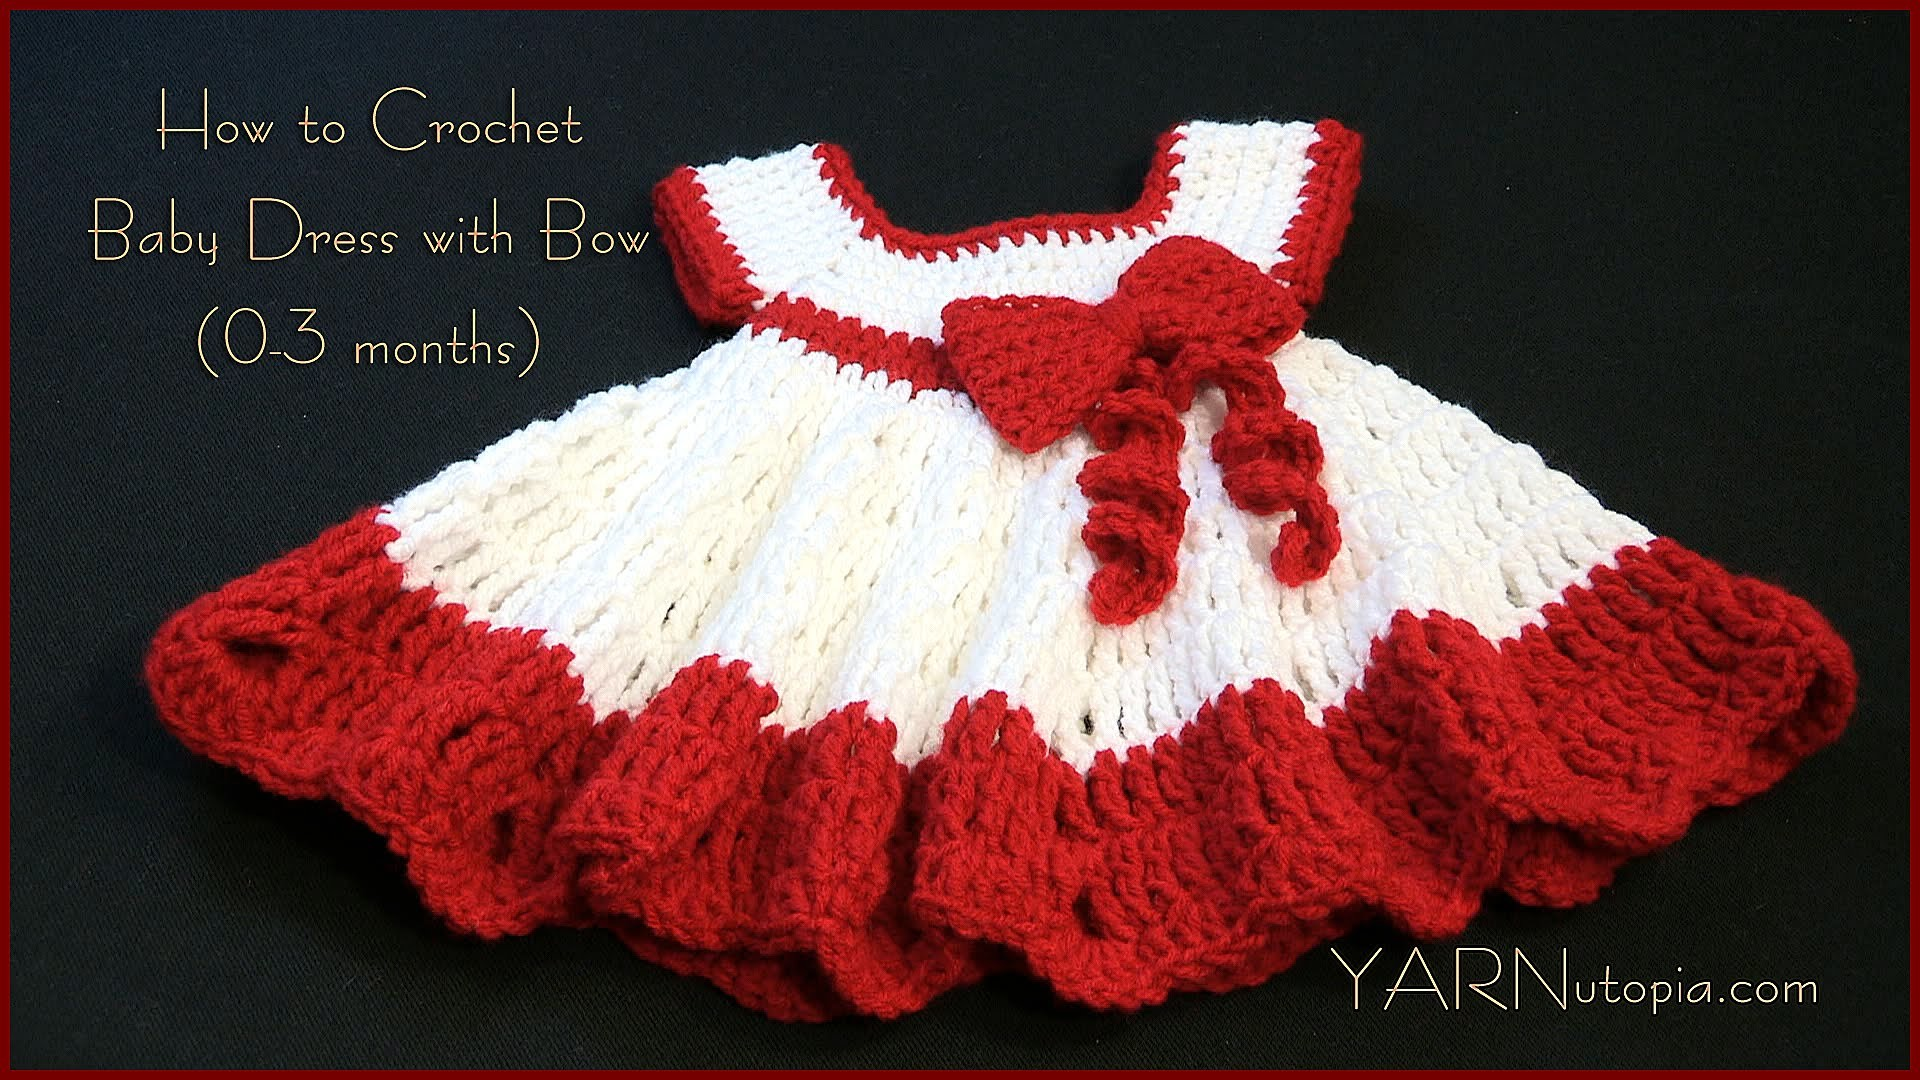 How to Crochet a Baby Dress with a Bow